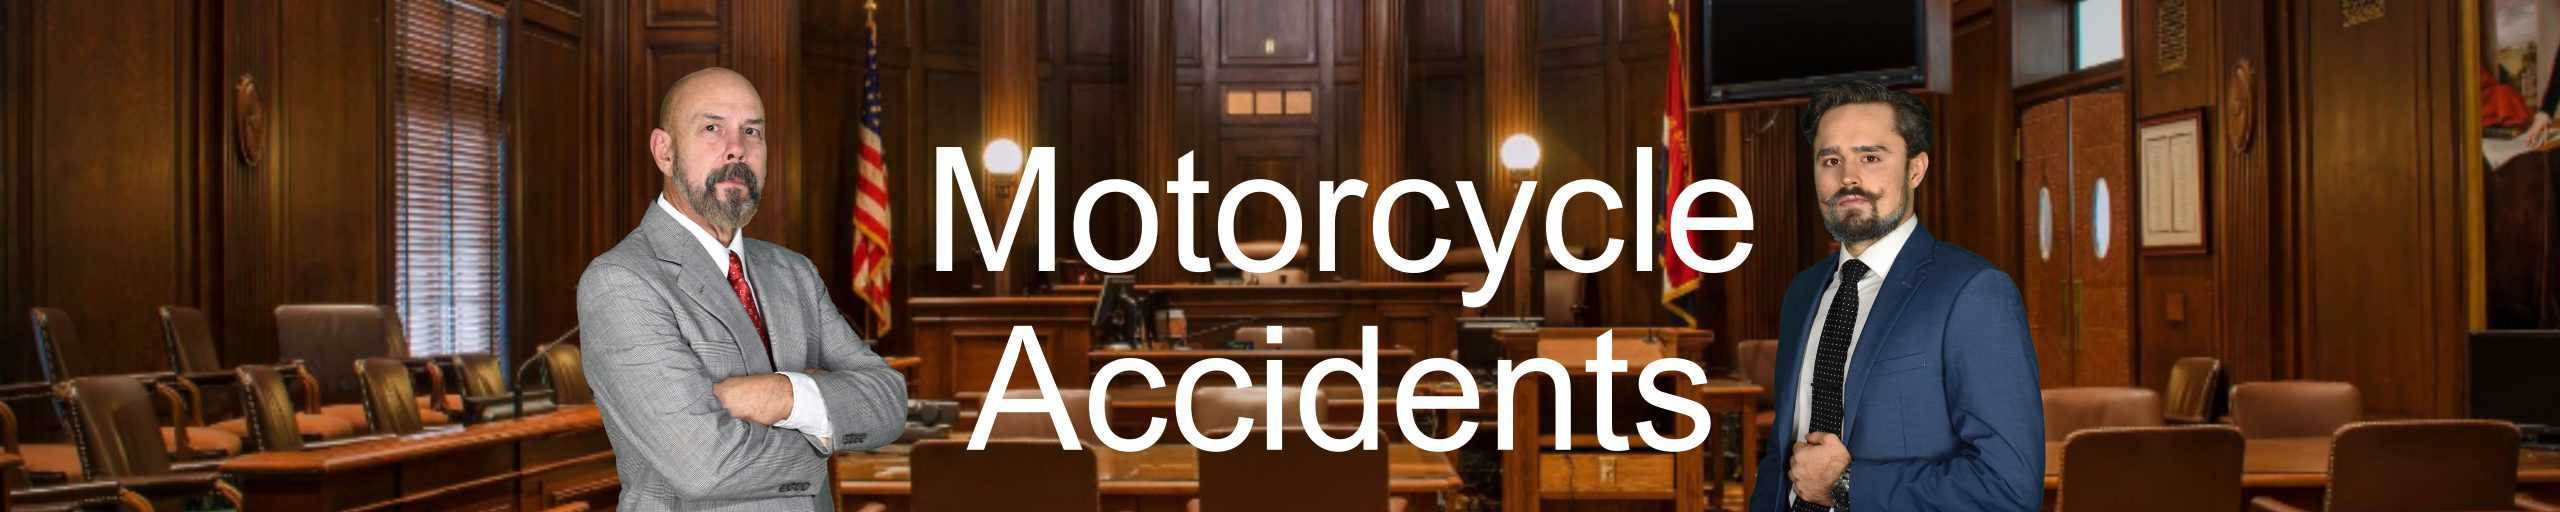 Motorcycle-Accidents-Bike-Personal-Injury-Attorney-Lawyer-Hurt-Broken-Rear-End-Money-Settlement-Hospital-ER-Damage-Insurance-Company